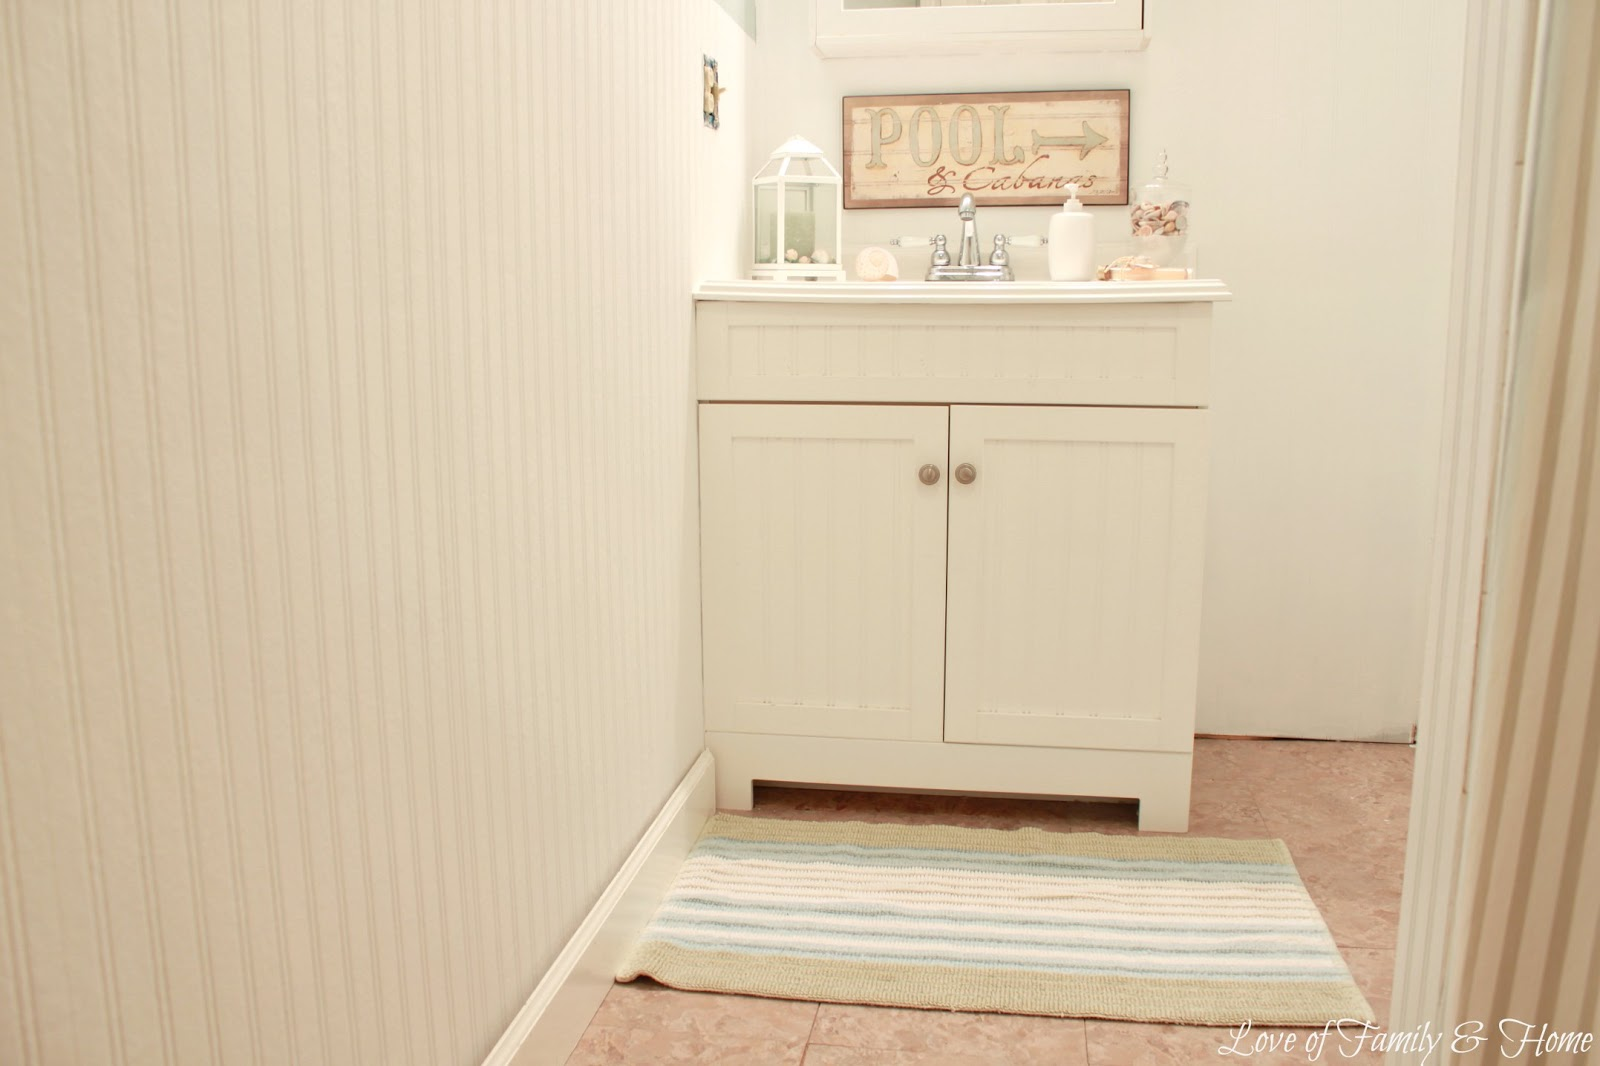 Beadboard Wallpaper Tutorial - Love of Family & Home